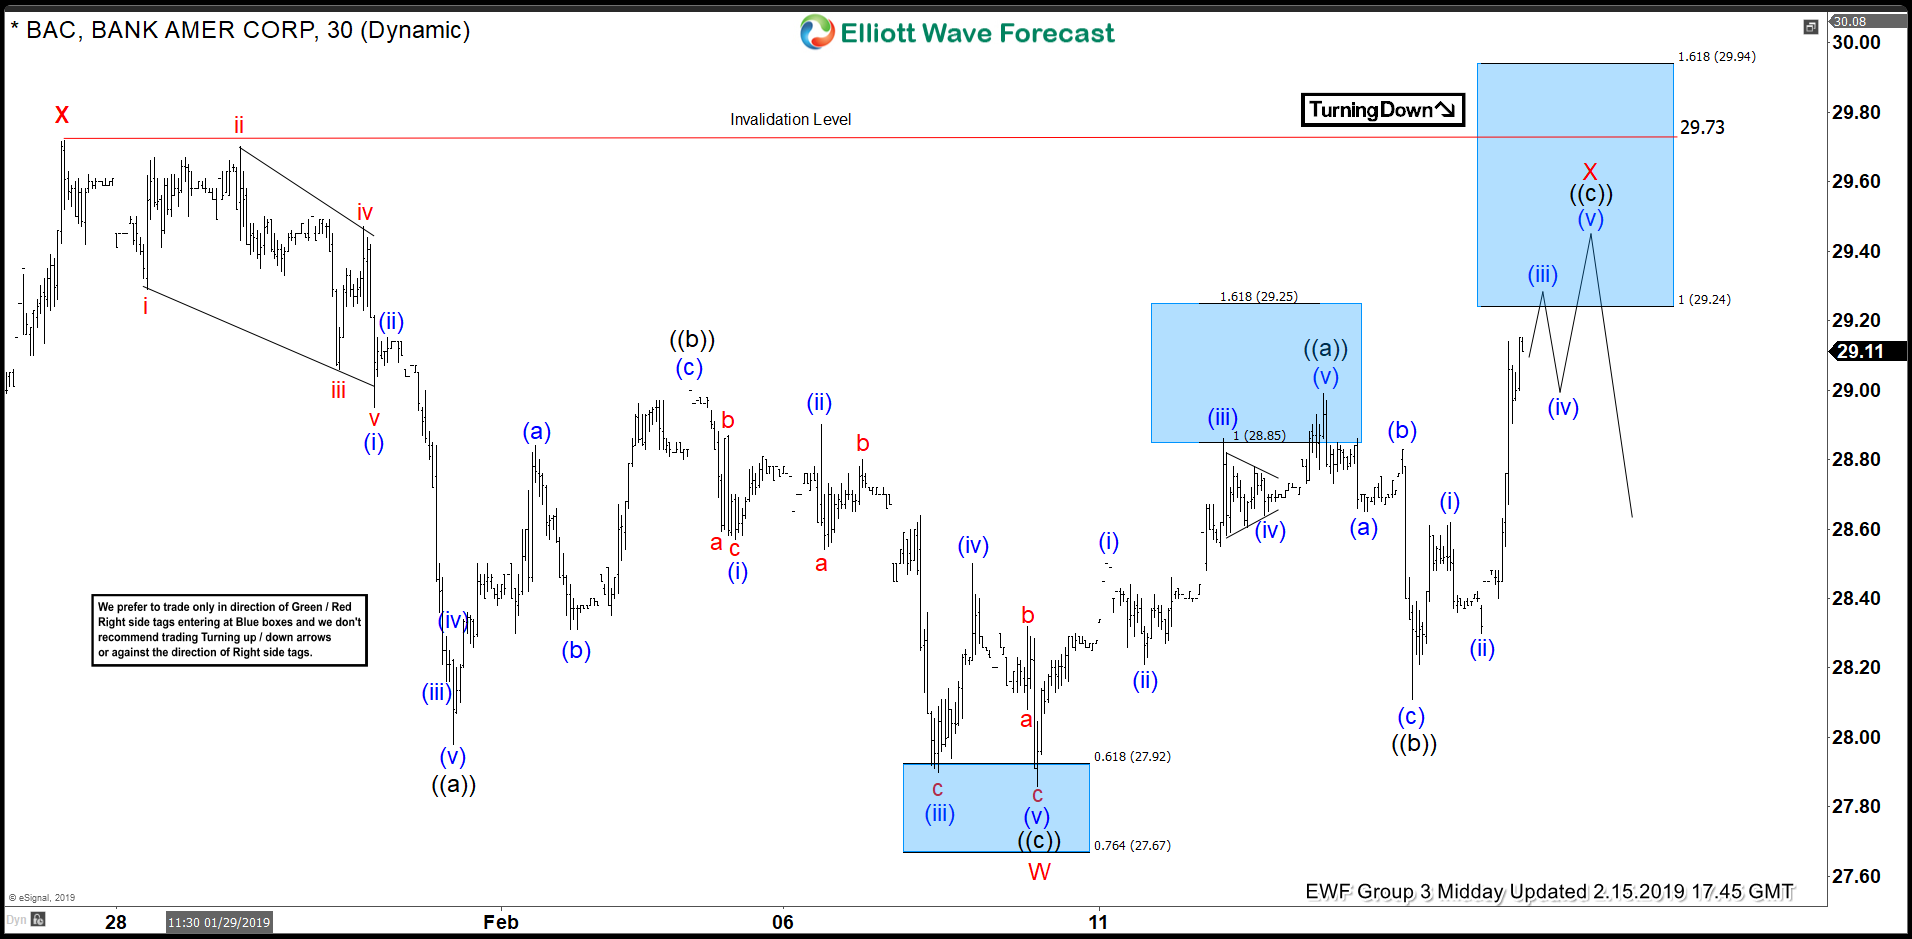 BAC Elliott Wave Analysis: Blue Boxes calling the reaction lower